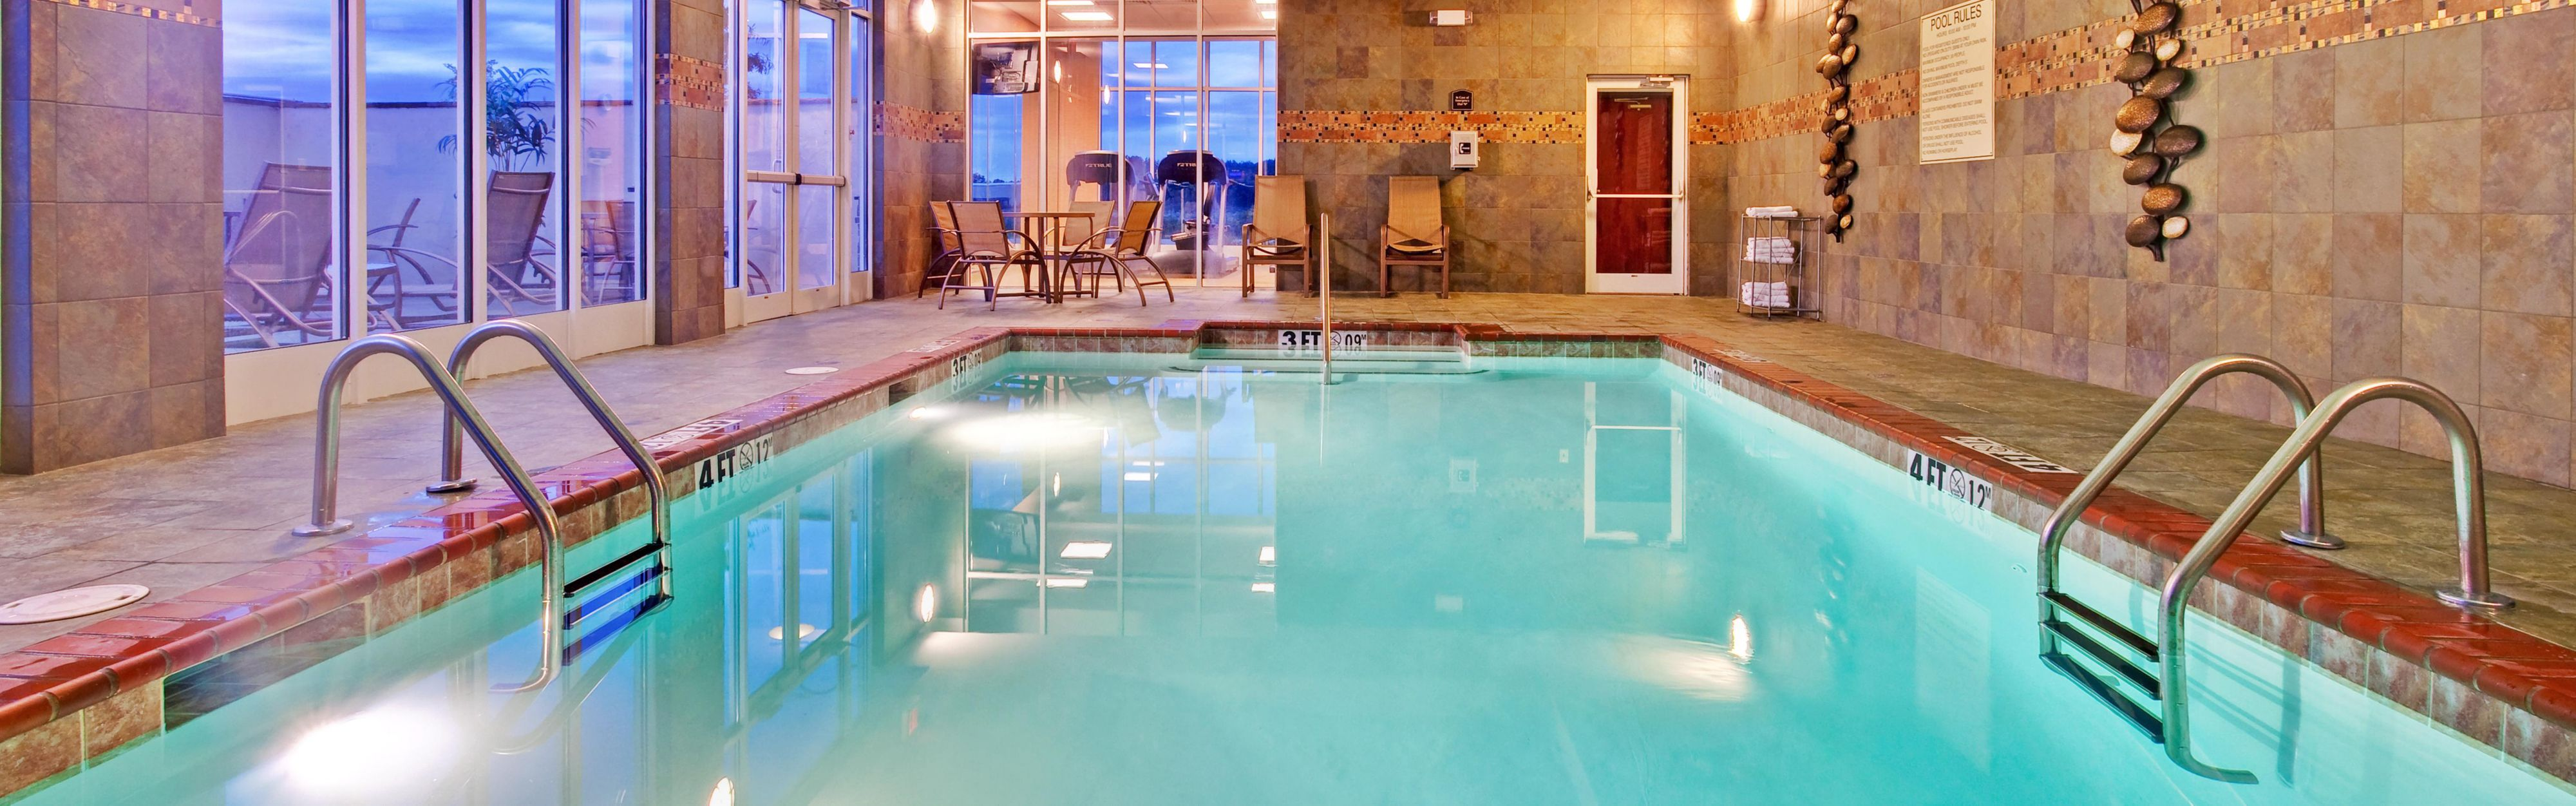 Pearl Ms Hotels And Motels